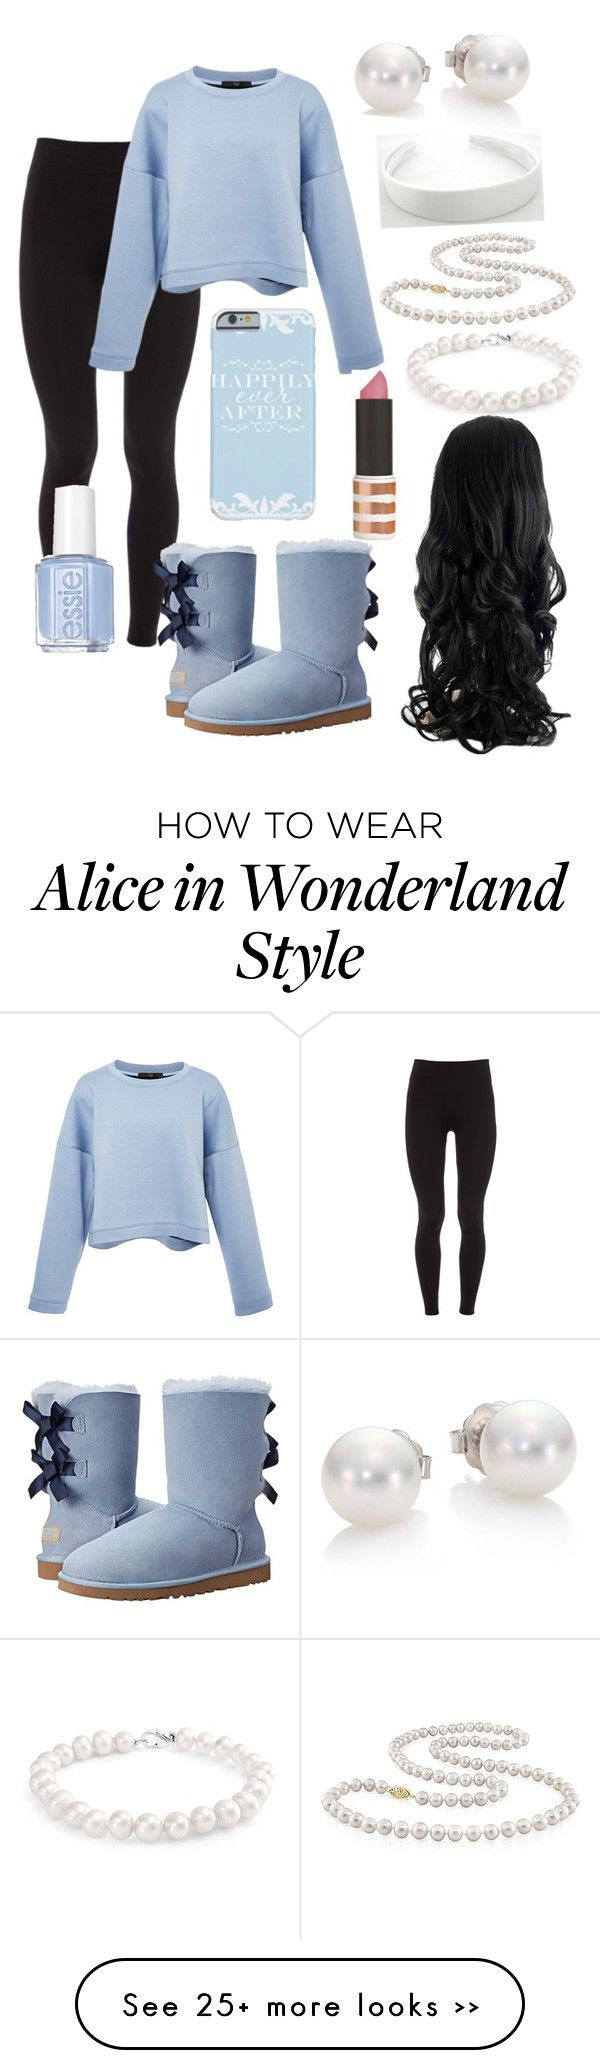 """Winter wonderland"" by genova-was-here on Polyvore featuring Elie Tahari, UGG Australia, TIBI, Mikimoto, Topshop, Bling Jewelry, Miadora and Essie"